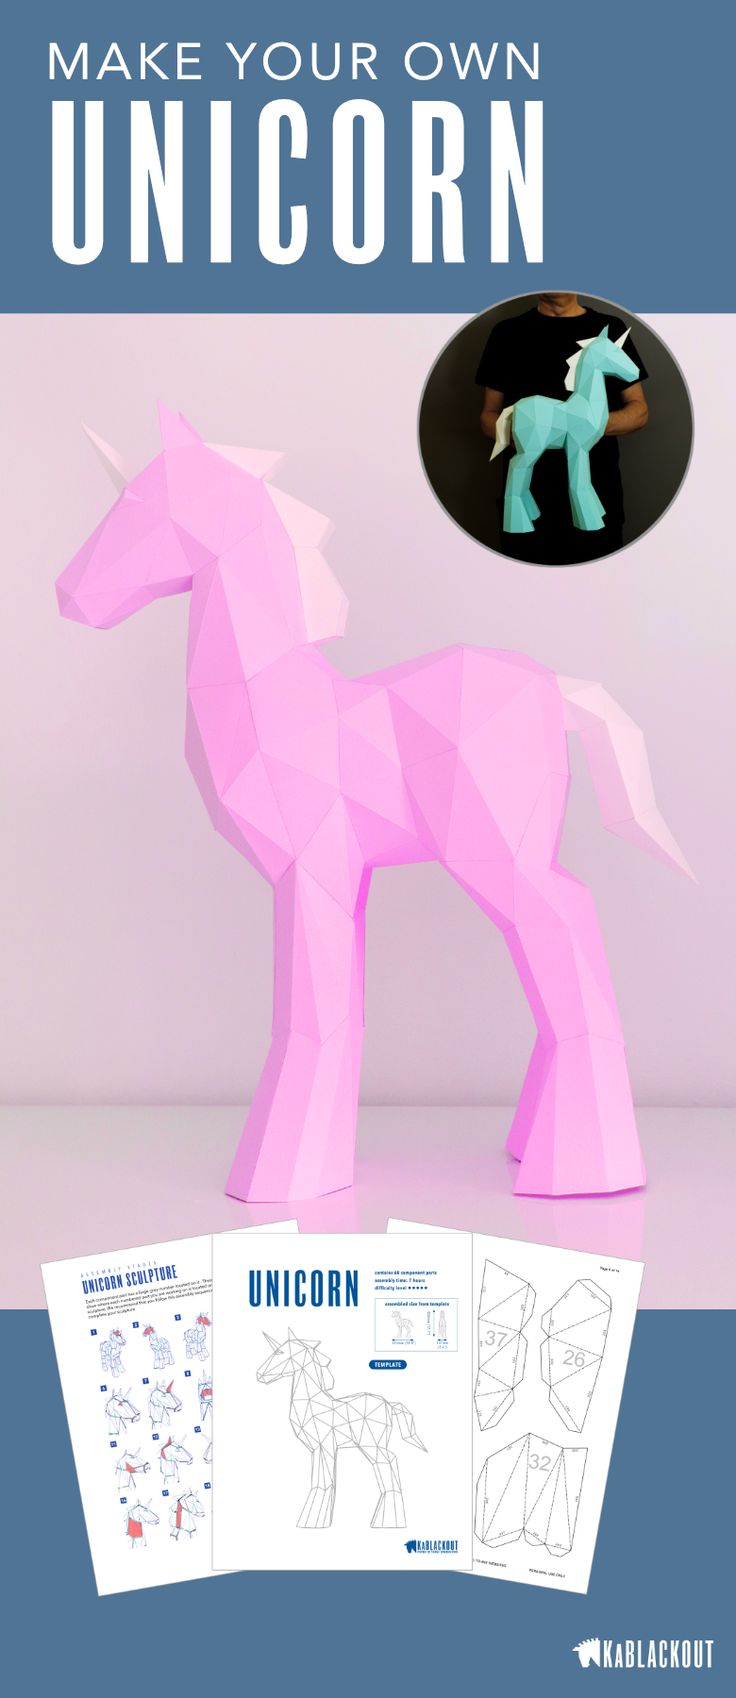 Papercraft Unicorn Template. Make your own beautiful little paper model unicorn using this PDF template and illustrated guide from KaBlackout.